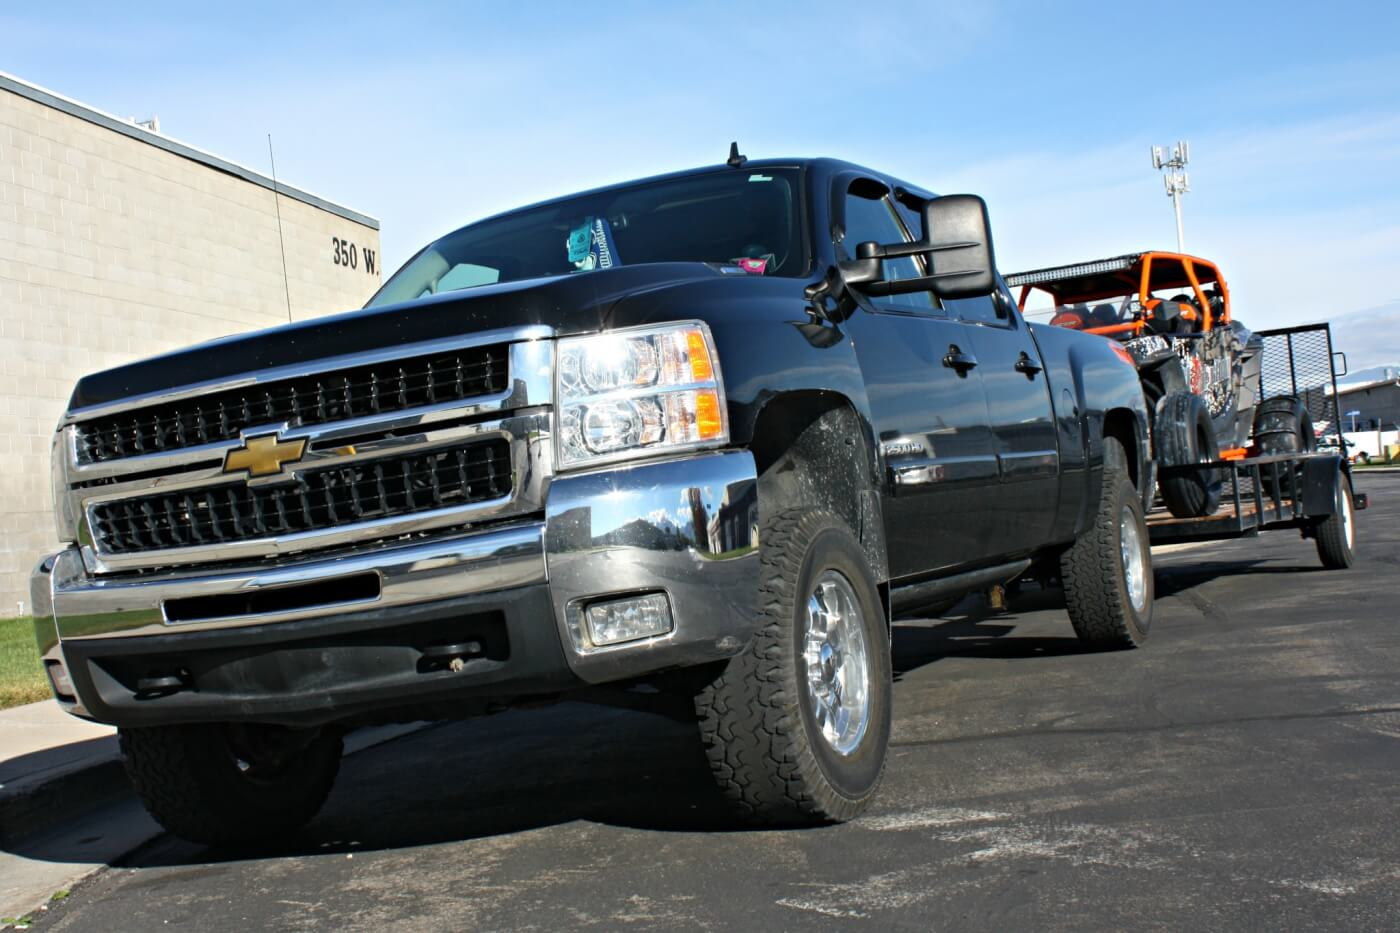 The 2007.5-2010 LMM Duramax was the first generation of Duramax to be equipped with the new emissions regulated Diesel Particulate Filter in the exhaust system, which helps reduce smoke and emissions expelled from the tailpipe. In the early years, this was thought to be the death of diesel performance, but with time, the aftermarket caught up and better towing performance and horsepower is now just a few bolt-on parts away.